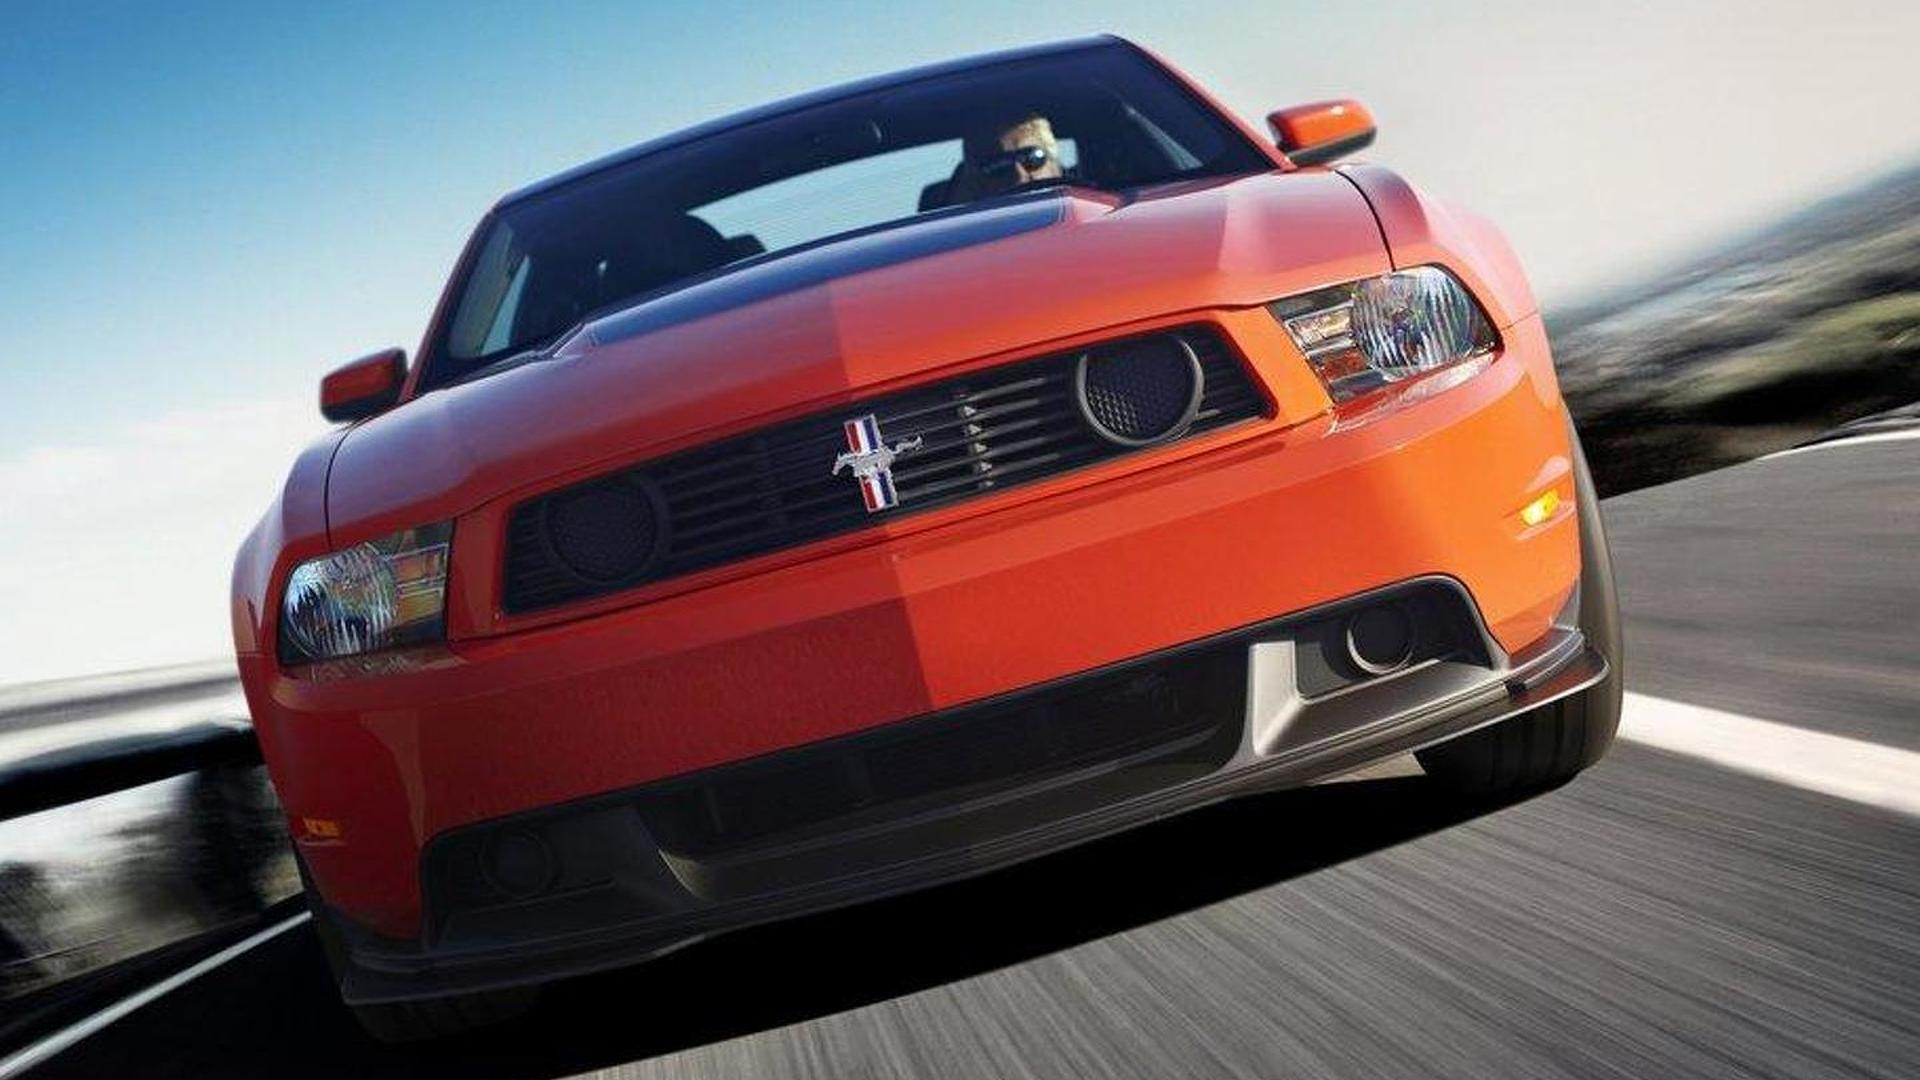 2012 Ford Mustang Boss 302 revealed [video]